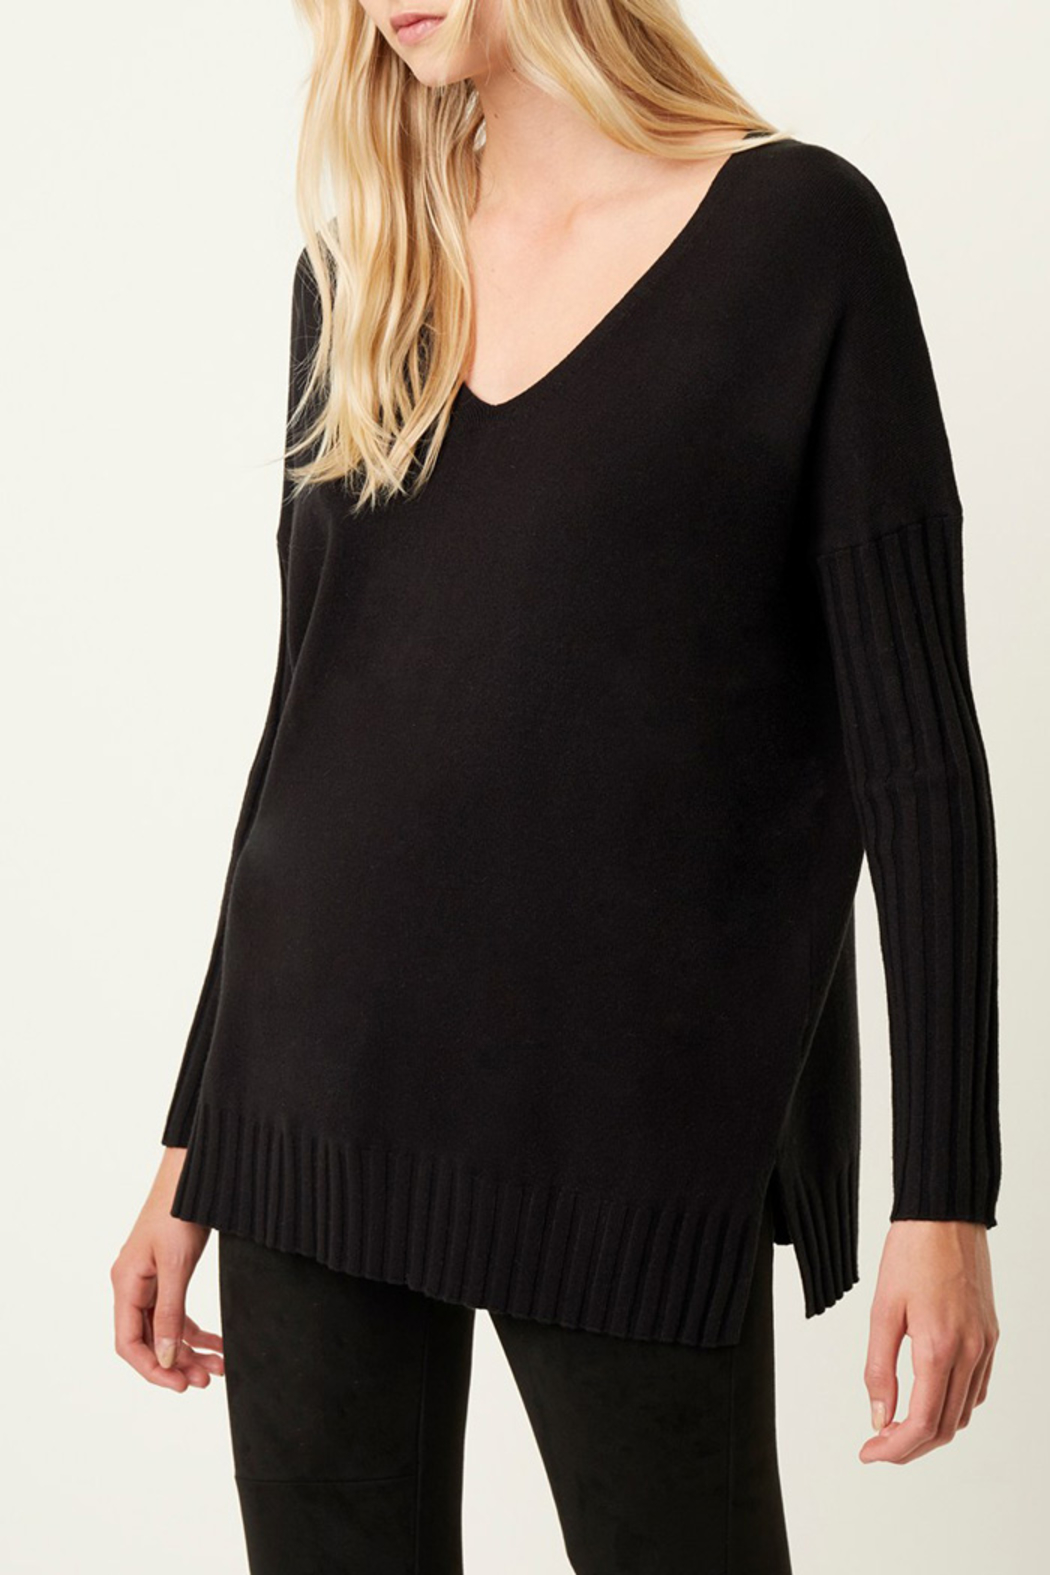 French Connection RIBBED V NECK SWEATER - Main Image